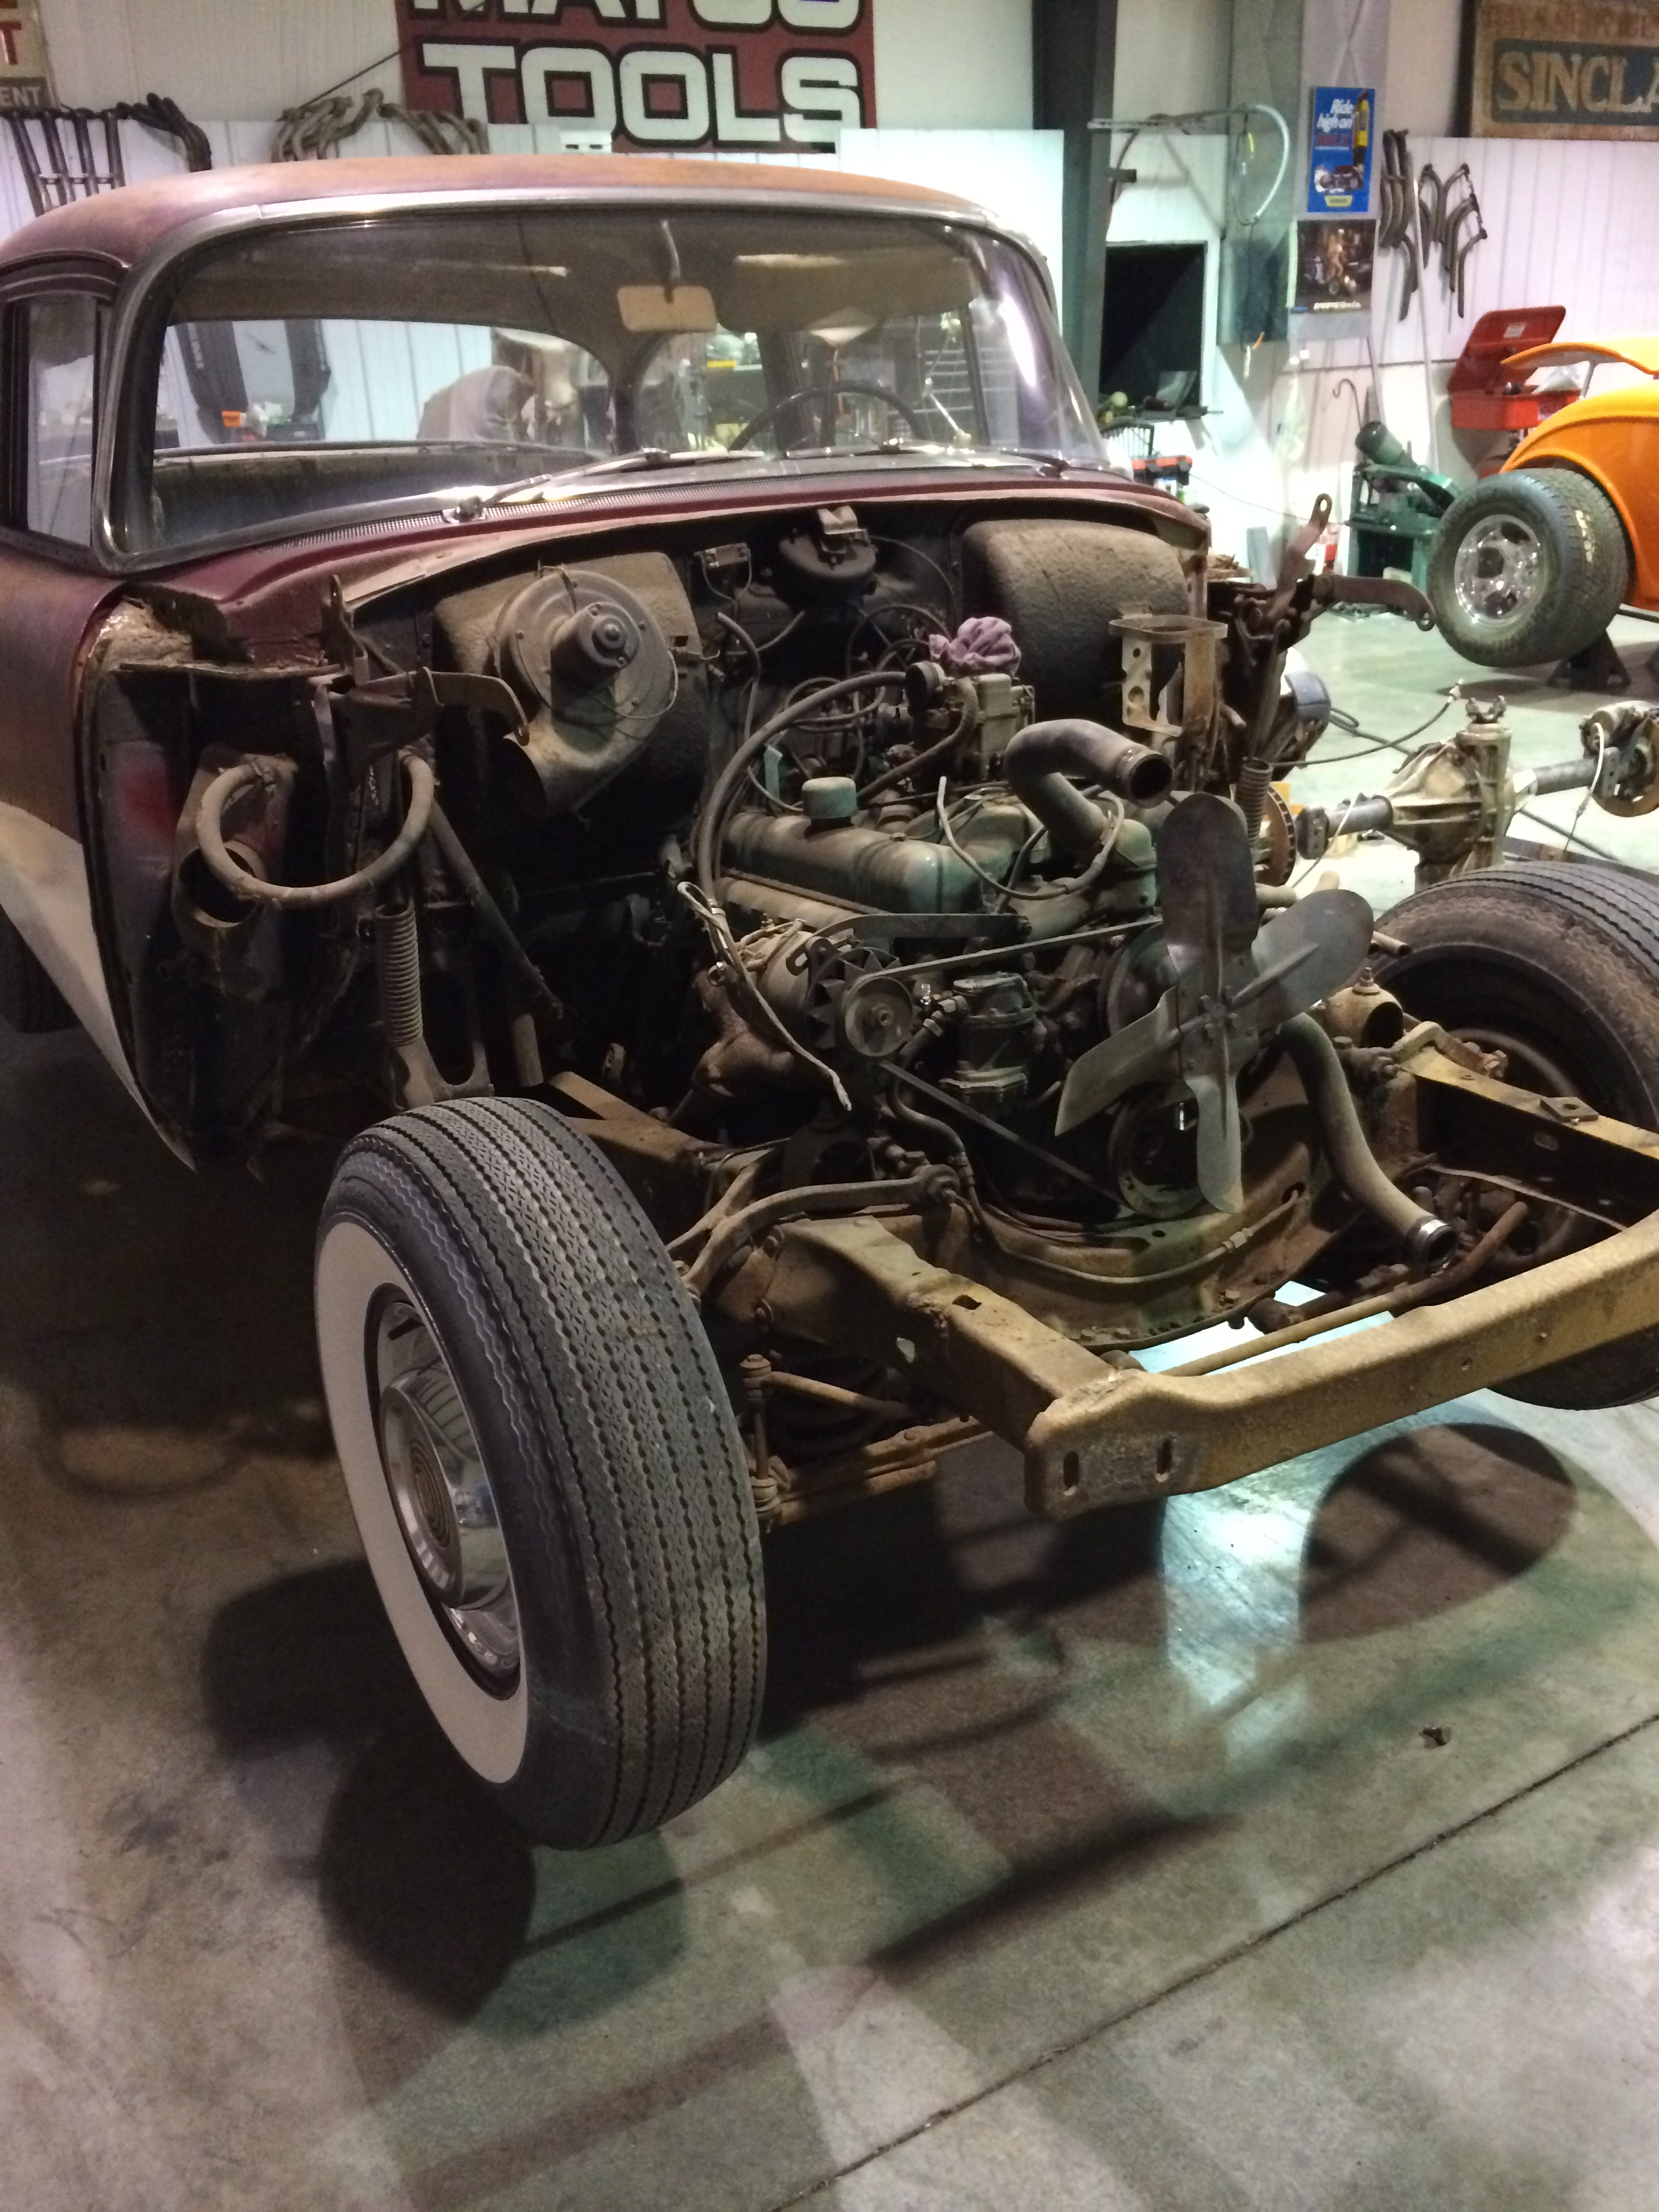 Hot Rods - 1955 Buick Special Old School Gasser Build | The H.A.M.B.